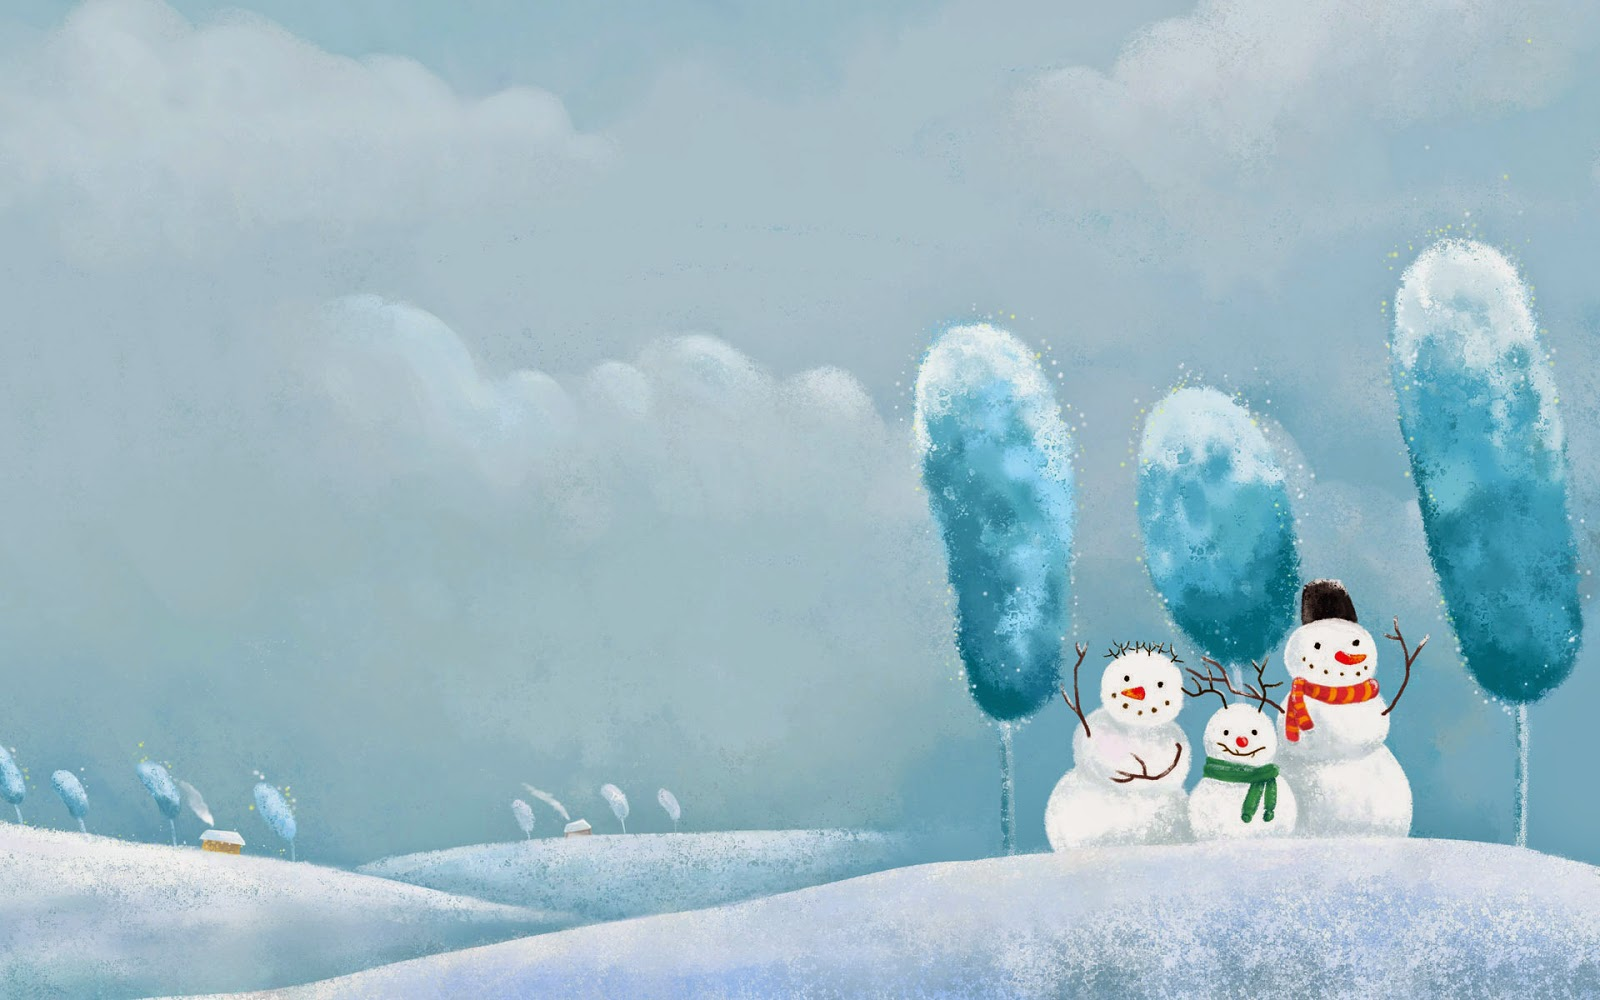 cute-little-snowman-family-image-cartoon-pictures-for-children-free-download.jpg